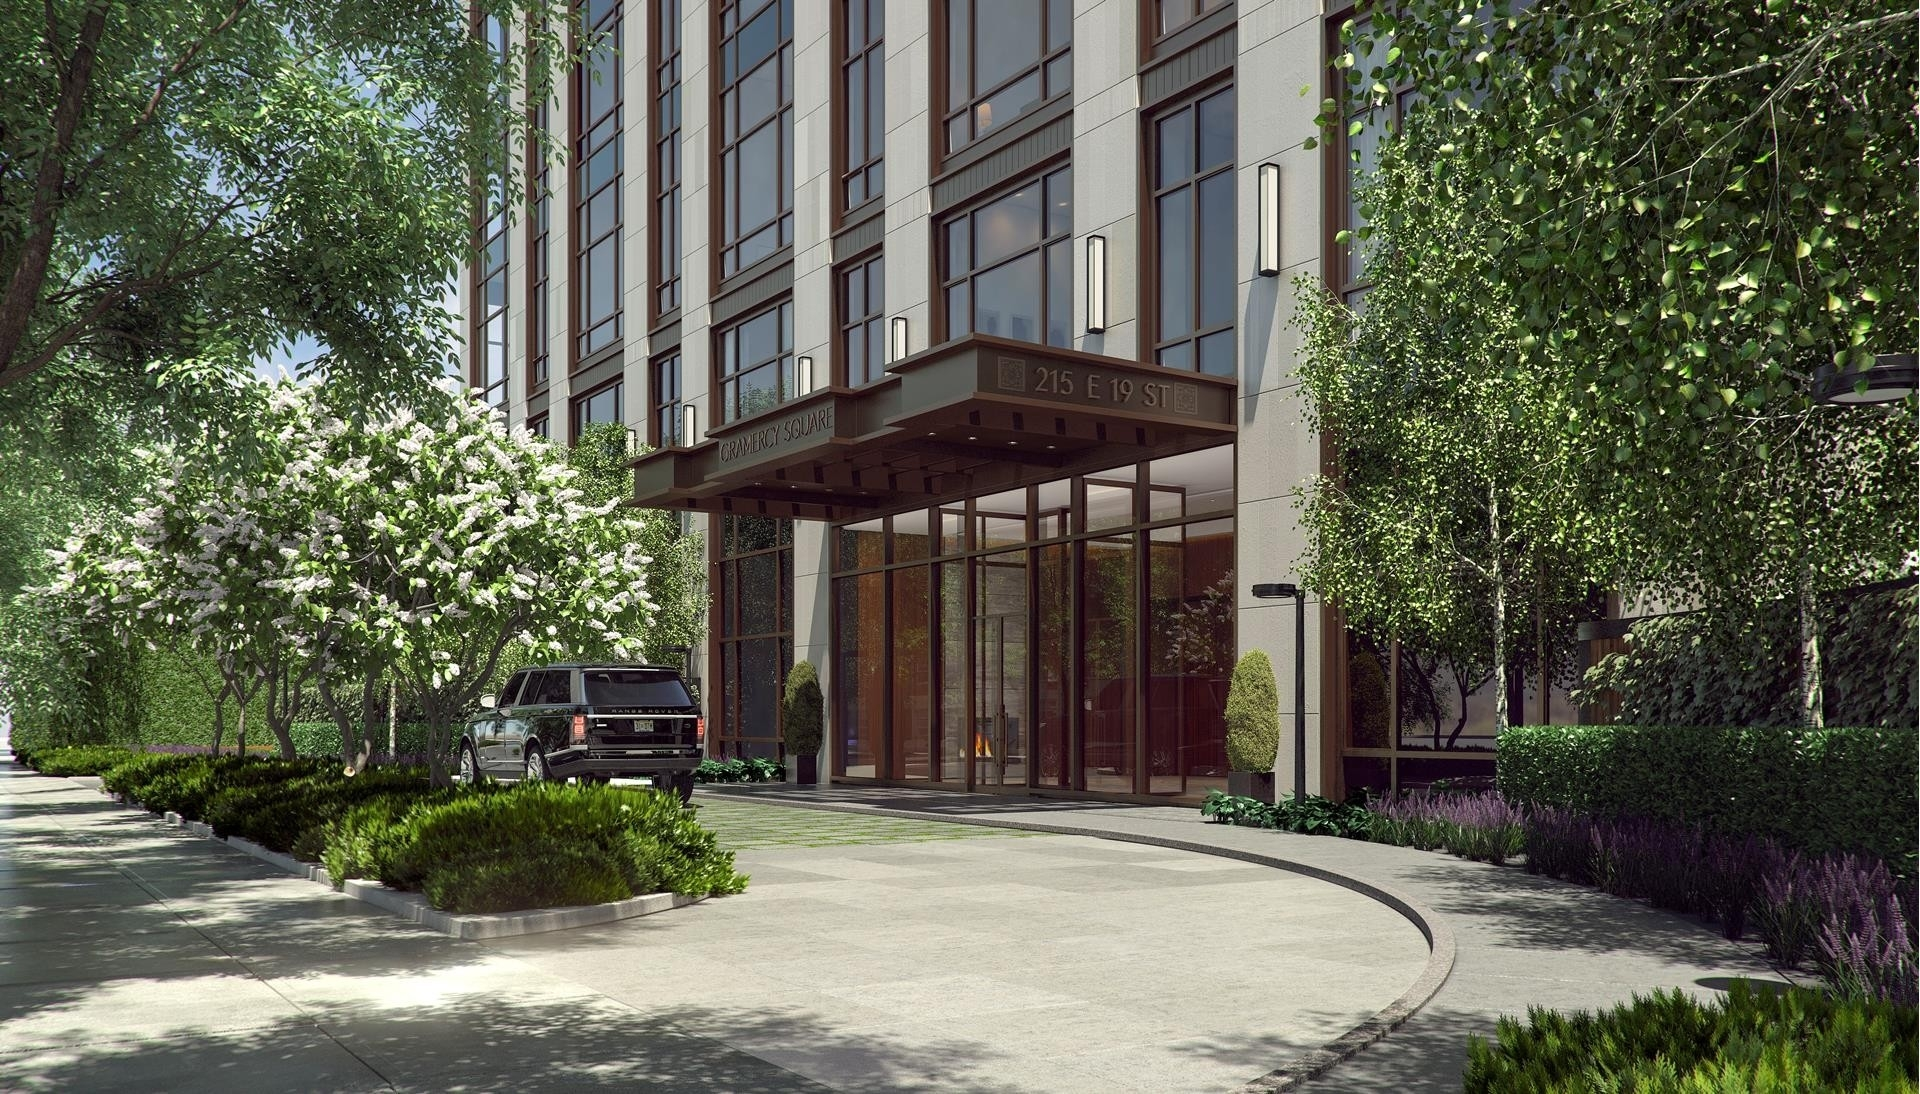 Condominium for Sale at Gramercy Square, 215 East 19th St, 10C Gramercy Park, New York, NY 10003